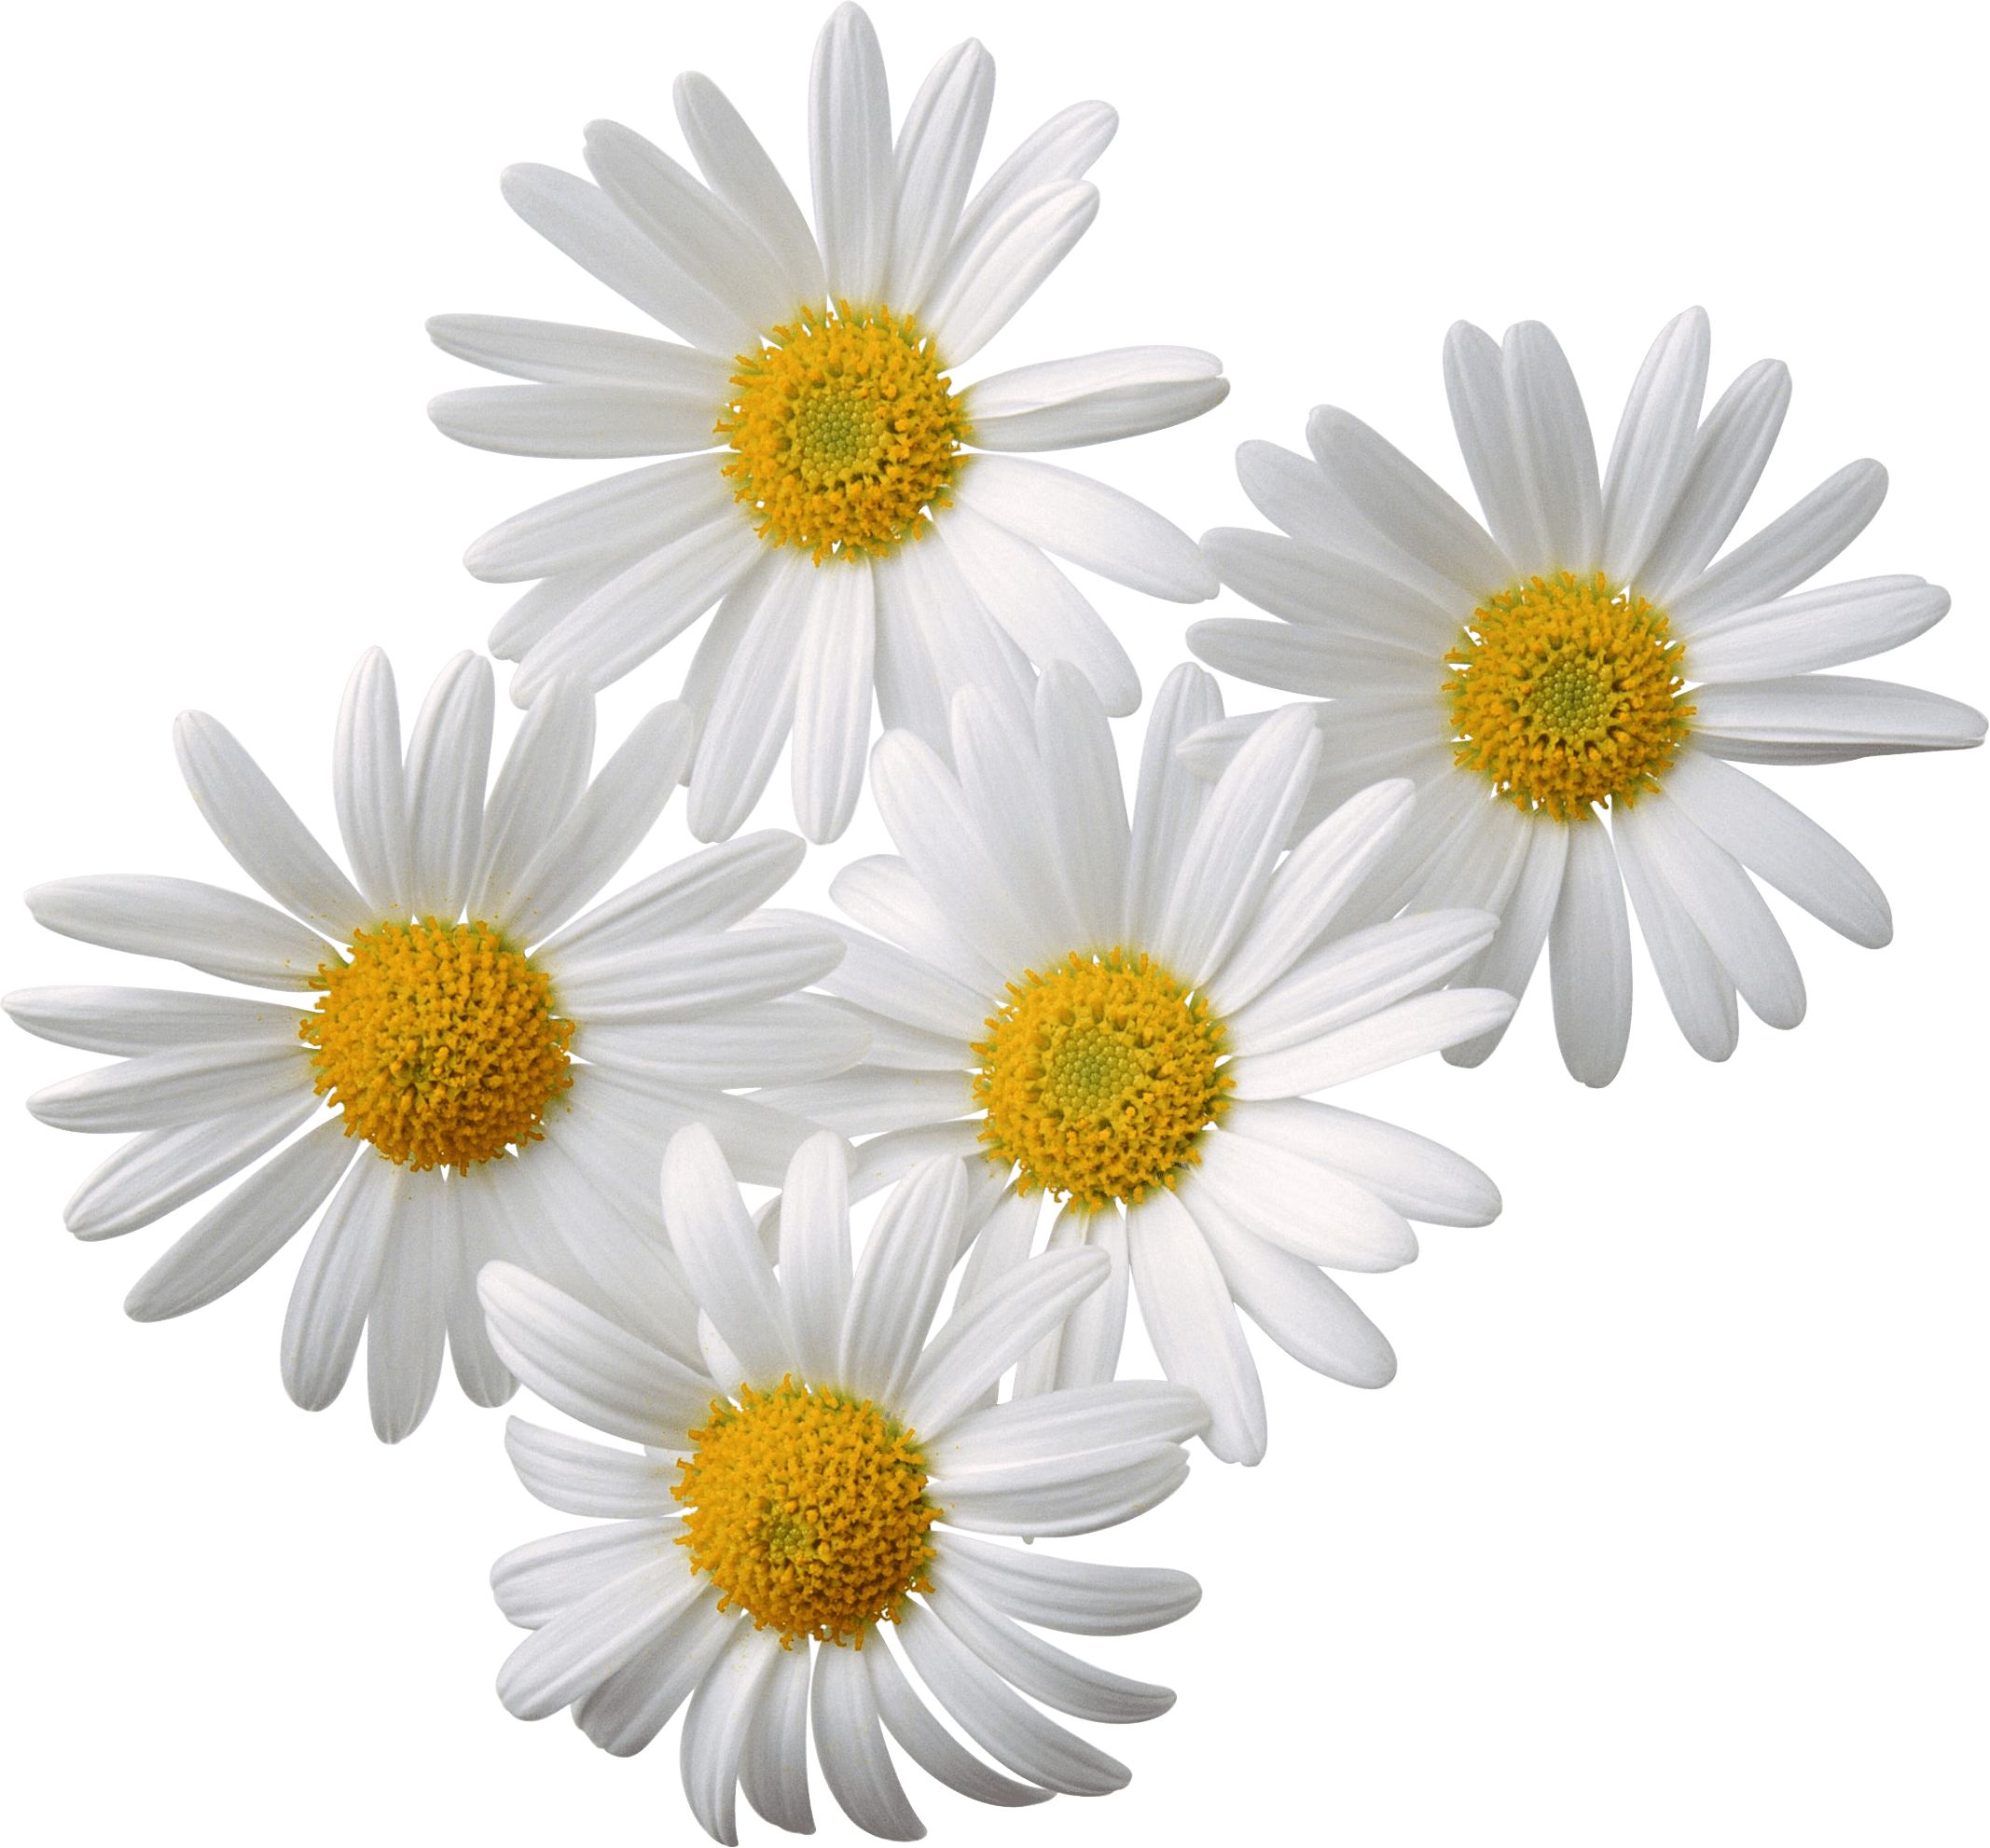 Flowers daisy white yellow transparent png stickpng flowers daisy white yellow mightylinksfo